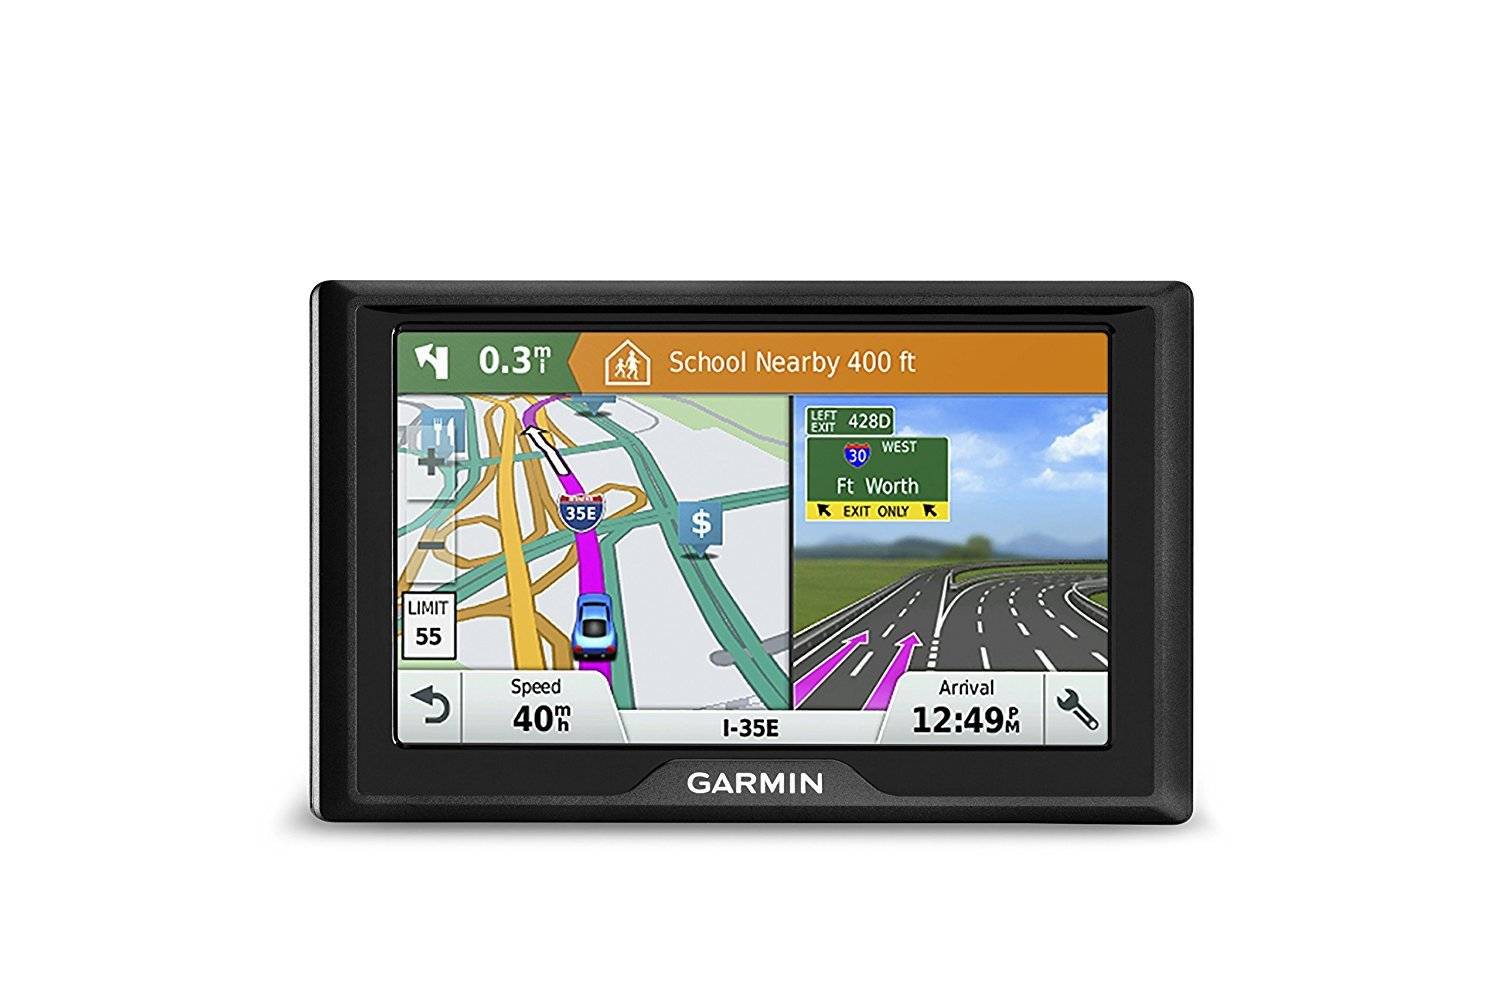 Garmin Drive 51 USA LM GPS Navigator System with Lifetime Maps, Spoken Turn-By-Turn Directions, Direct Access, Driver Alerts, TripAdvisor and Foursquare Data (Renewed) by Bushnell